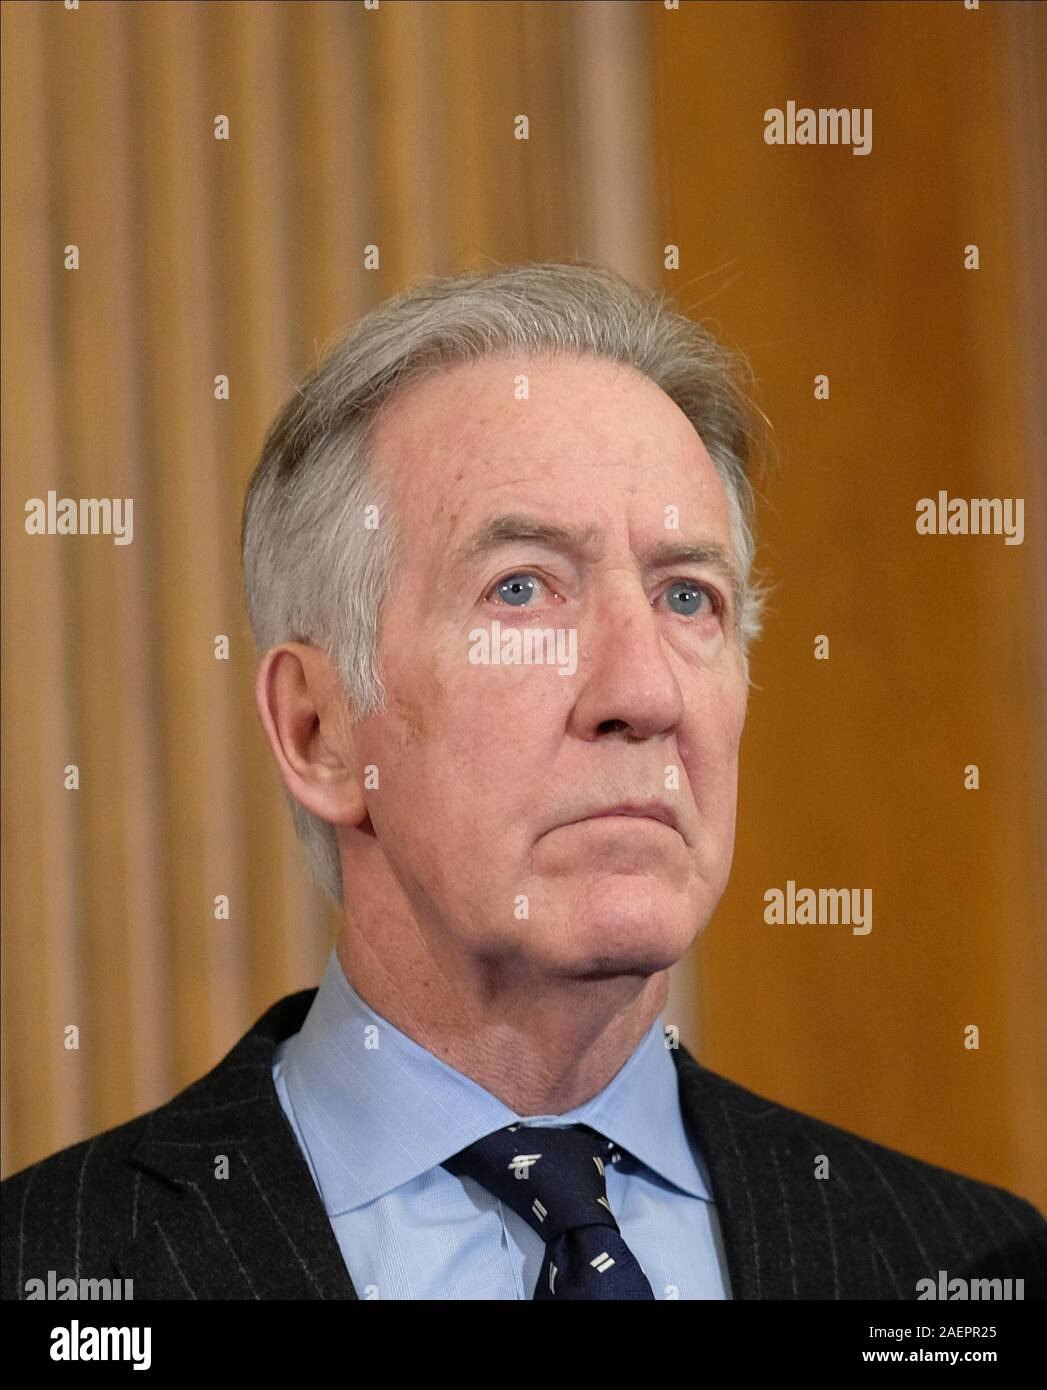 Washington DC, USA. 10th Dec, 2019. United States Representative Richard Neal (Democrat of Massachusetts), listens at a news conference laying out articles of impeachment for President Donald J. Trump, on Capitol Hill in Washington, DC on Tuesday, December 10, 2019. Credit: dpa picture alliance/Alamy Live News Stock Photo